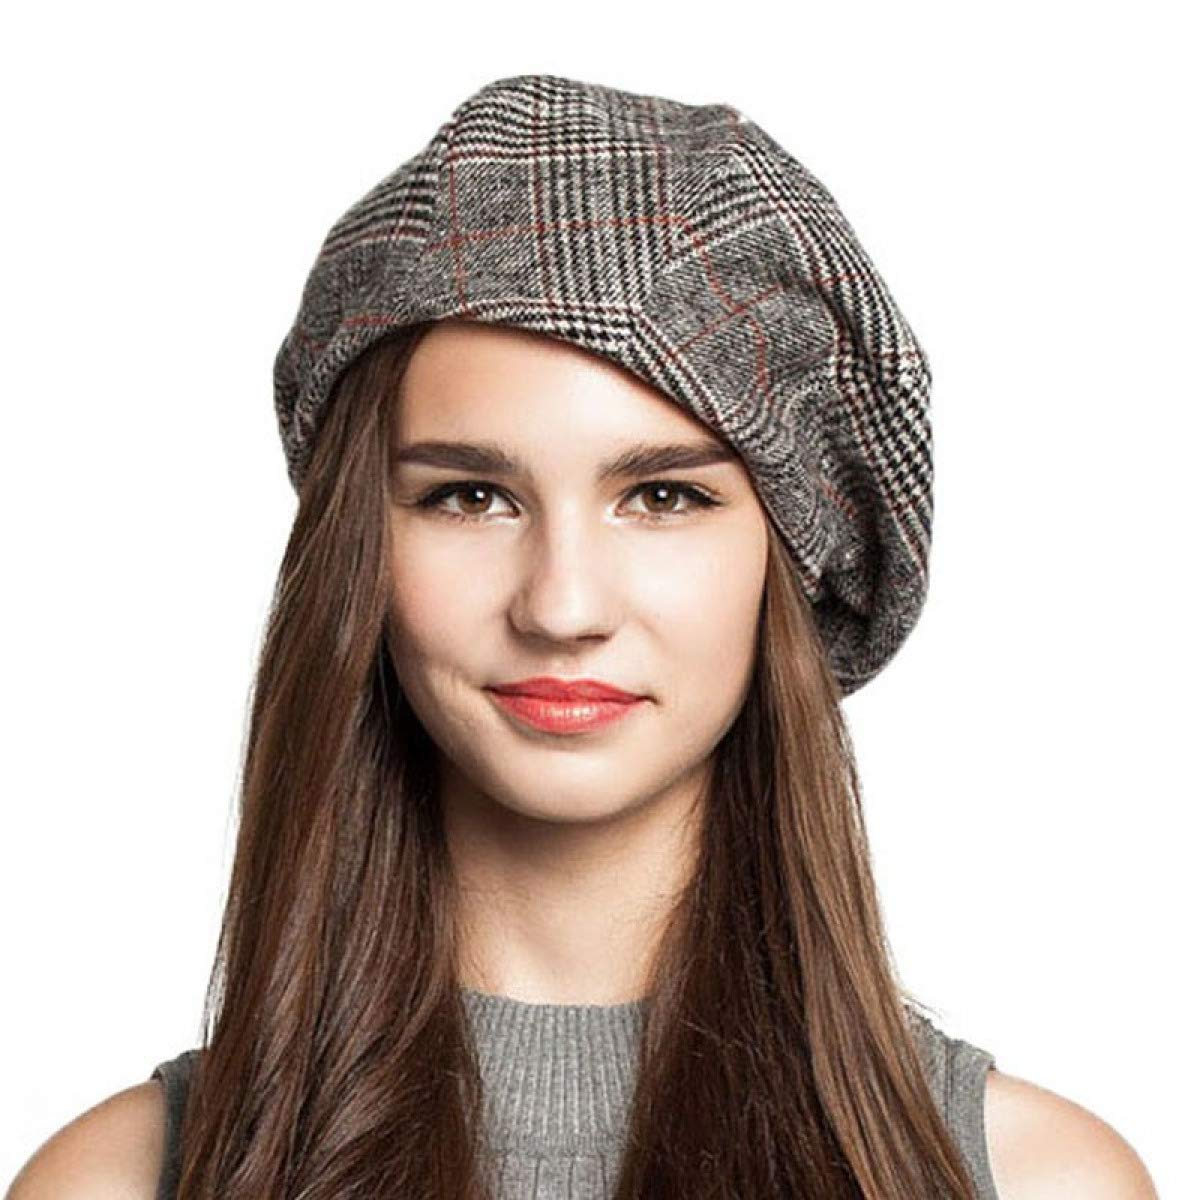 WEEKEND SHOP Beanie hat French Artist Beret Hat for Women Female Winter Fashion Black Blue Brown Plaid Wool Thick Berets Painter Octagonal Hats Caps Brown